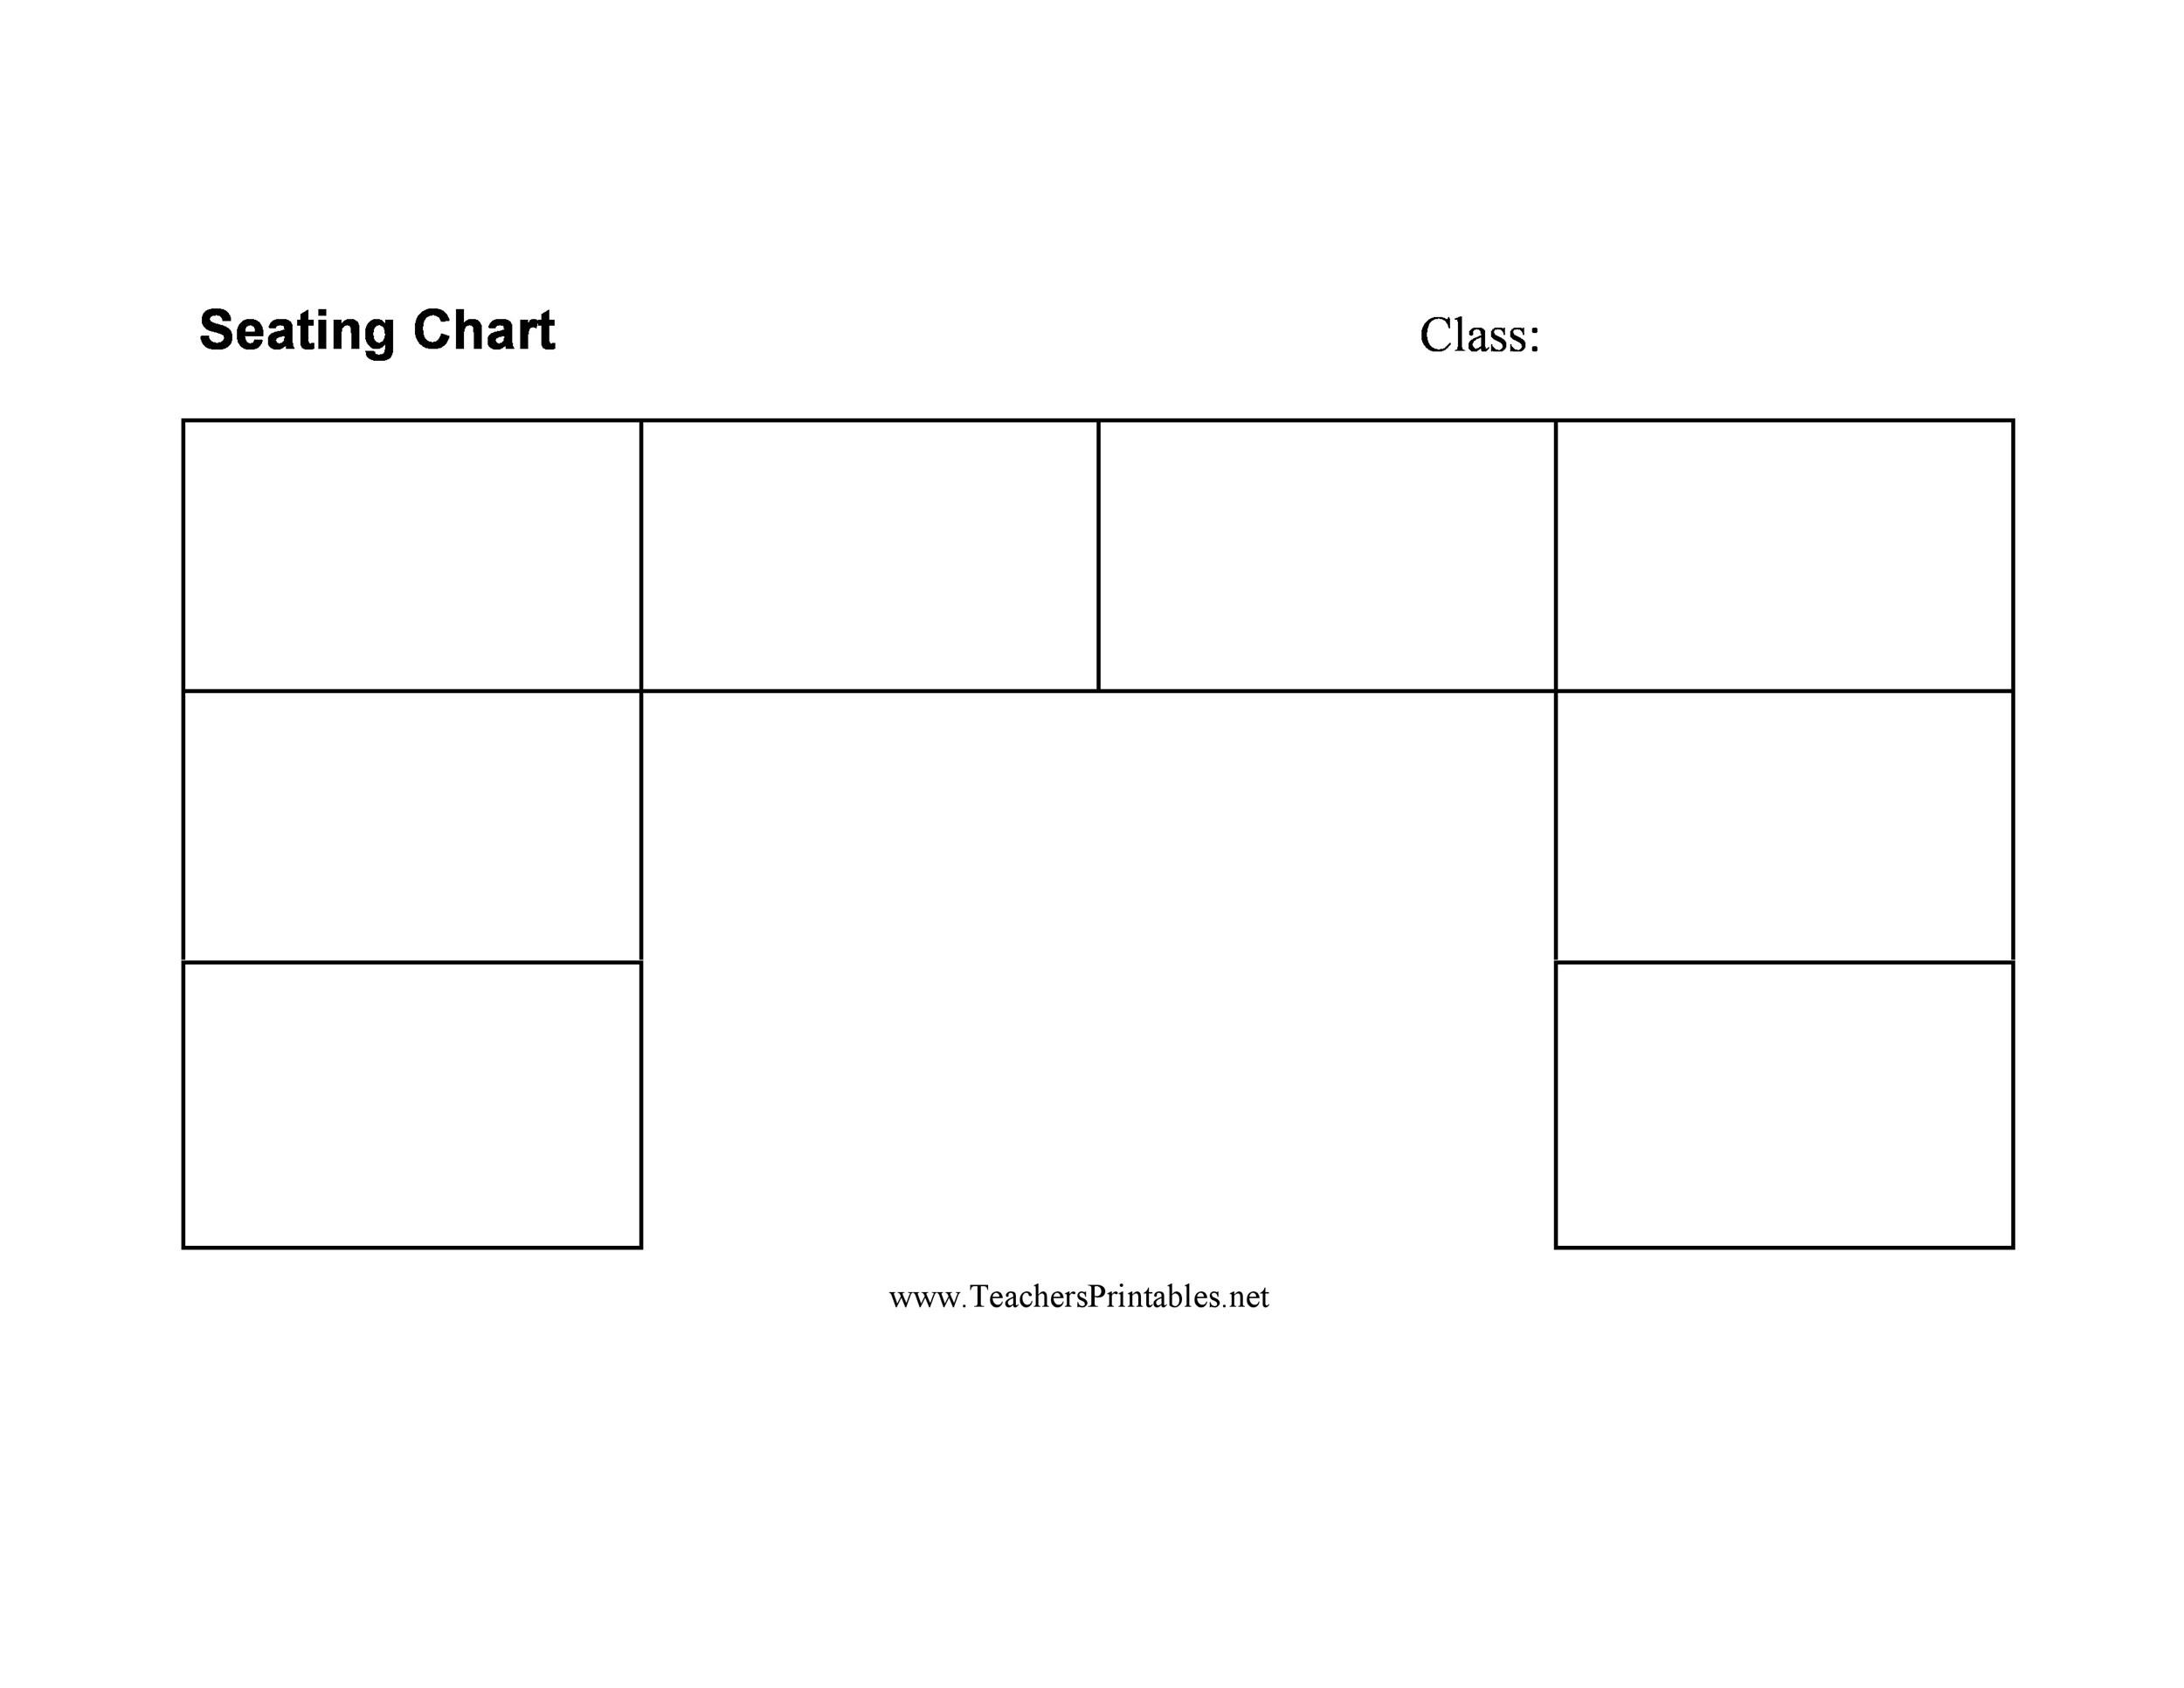 40+ Great Seating Chart Templates (Wedding, Classroom + more) - printable seating charts